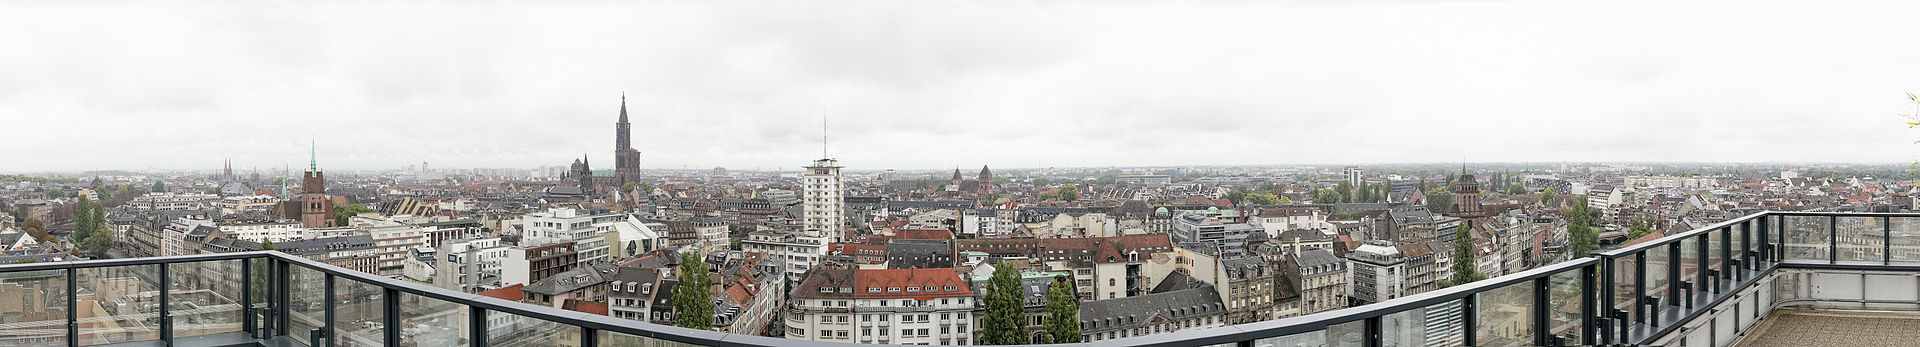 Strasbourg seen from Esca Tower in 2014.jpg